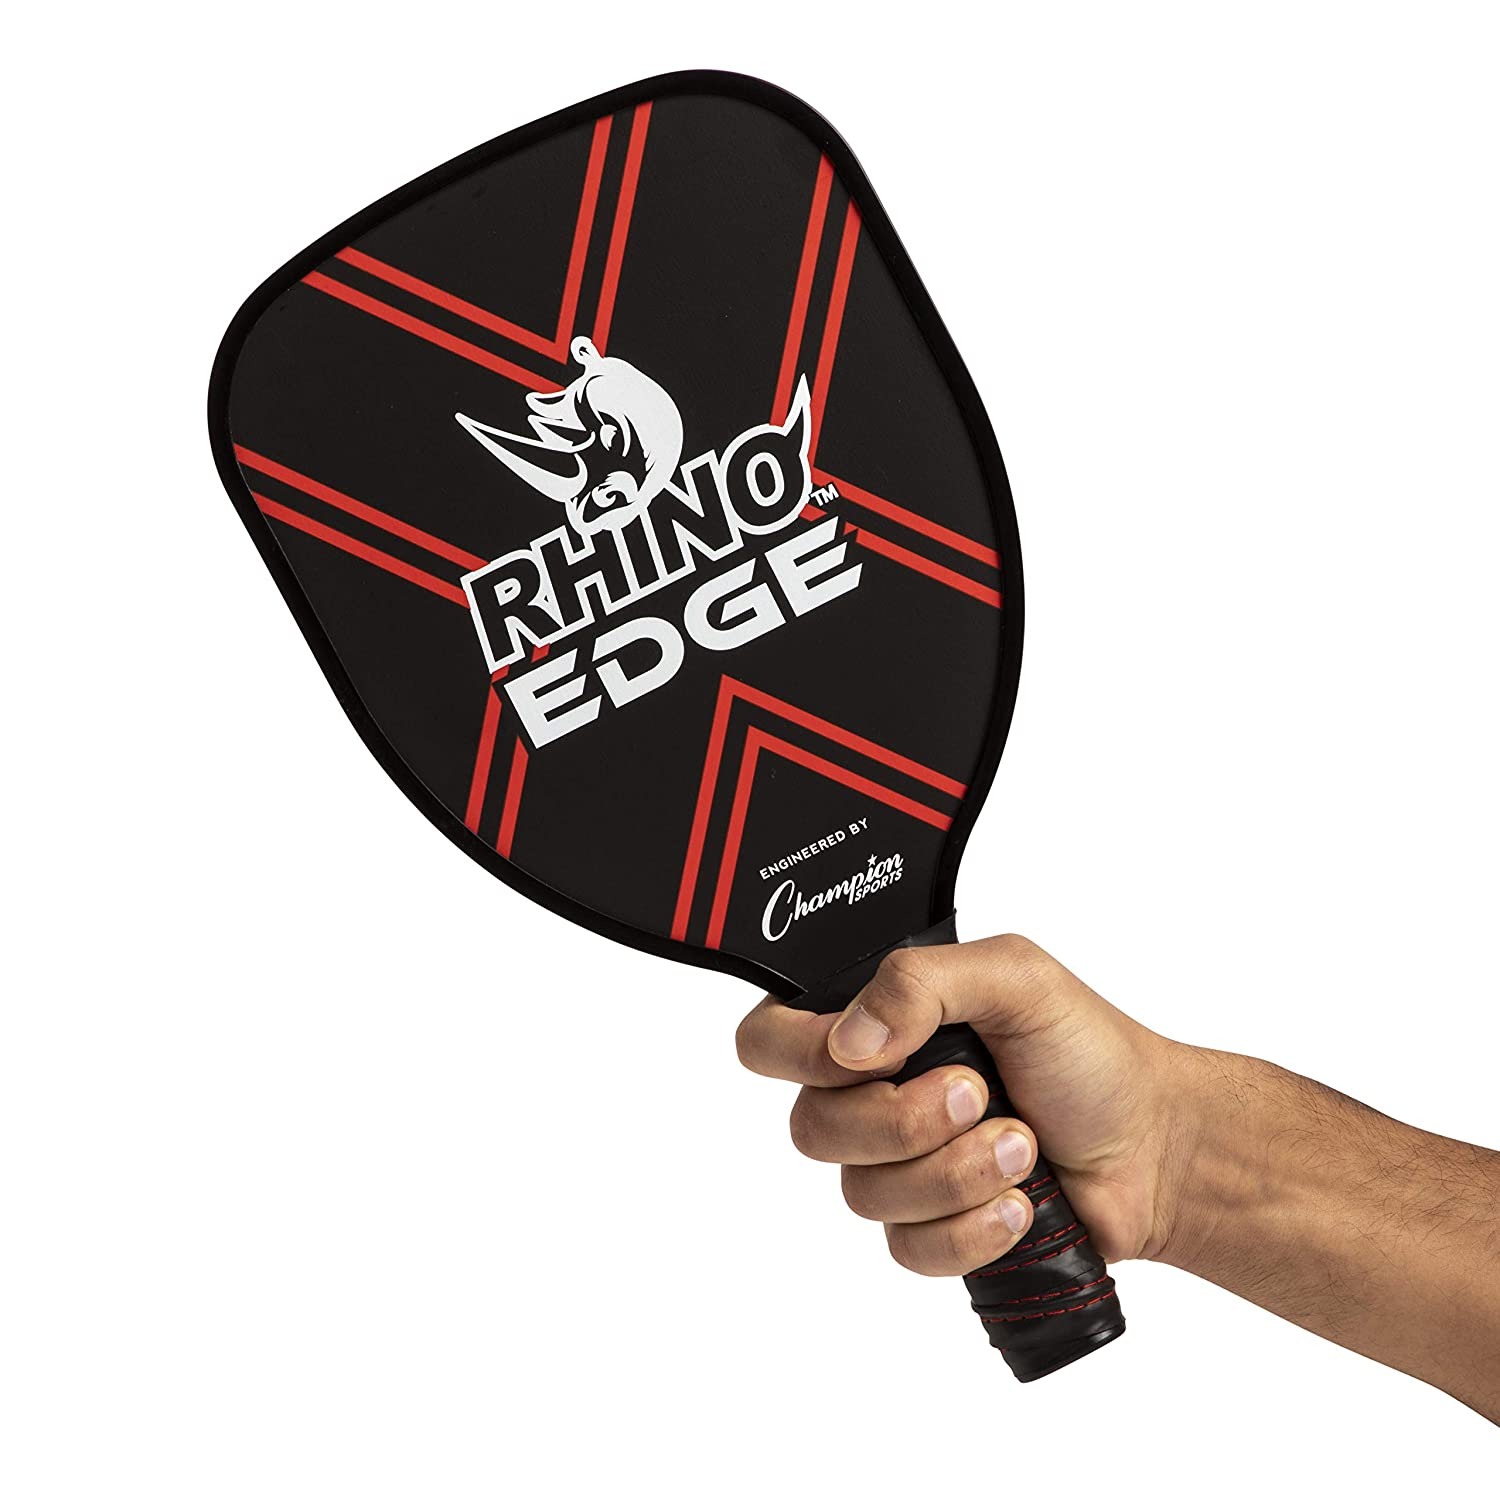 Amazon.com : Champion Sports Wooden Pickleball Paddle Set: Rhino Edge Wood Pickleball Paddle - Indoor/Outdoor Pickle Ball Paddles - Red/Black & Yellow/Black ...